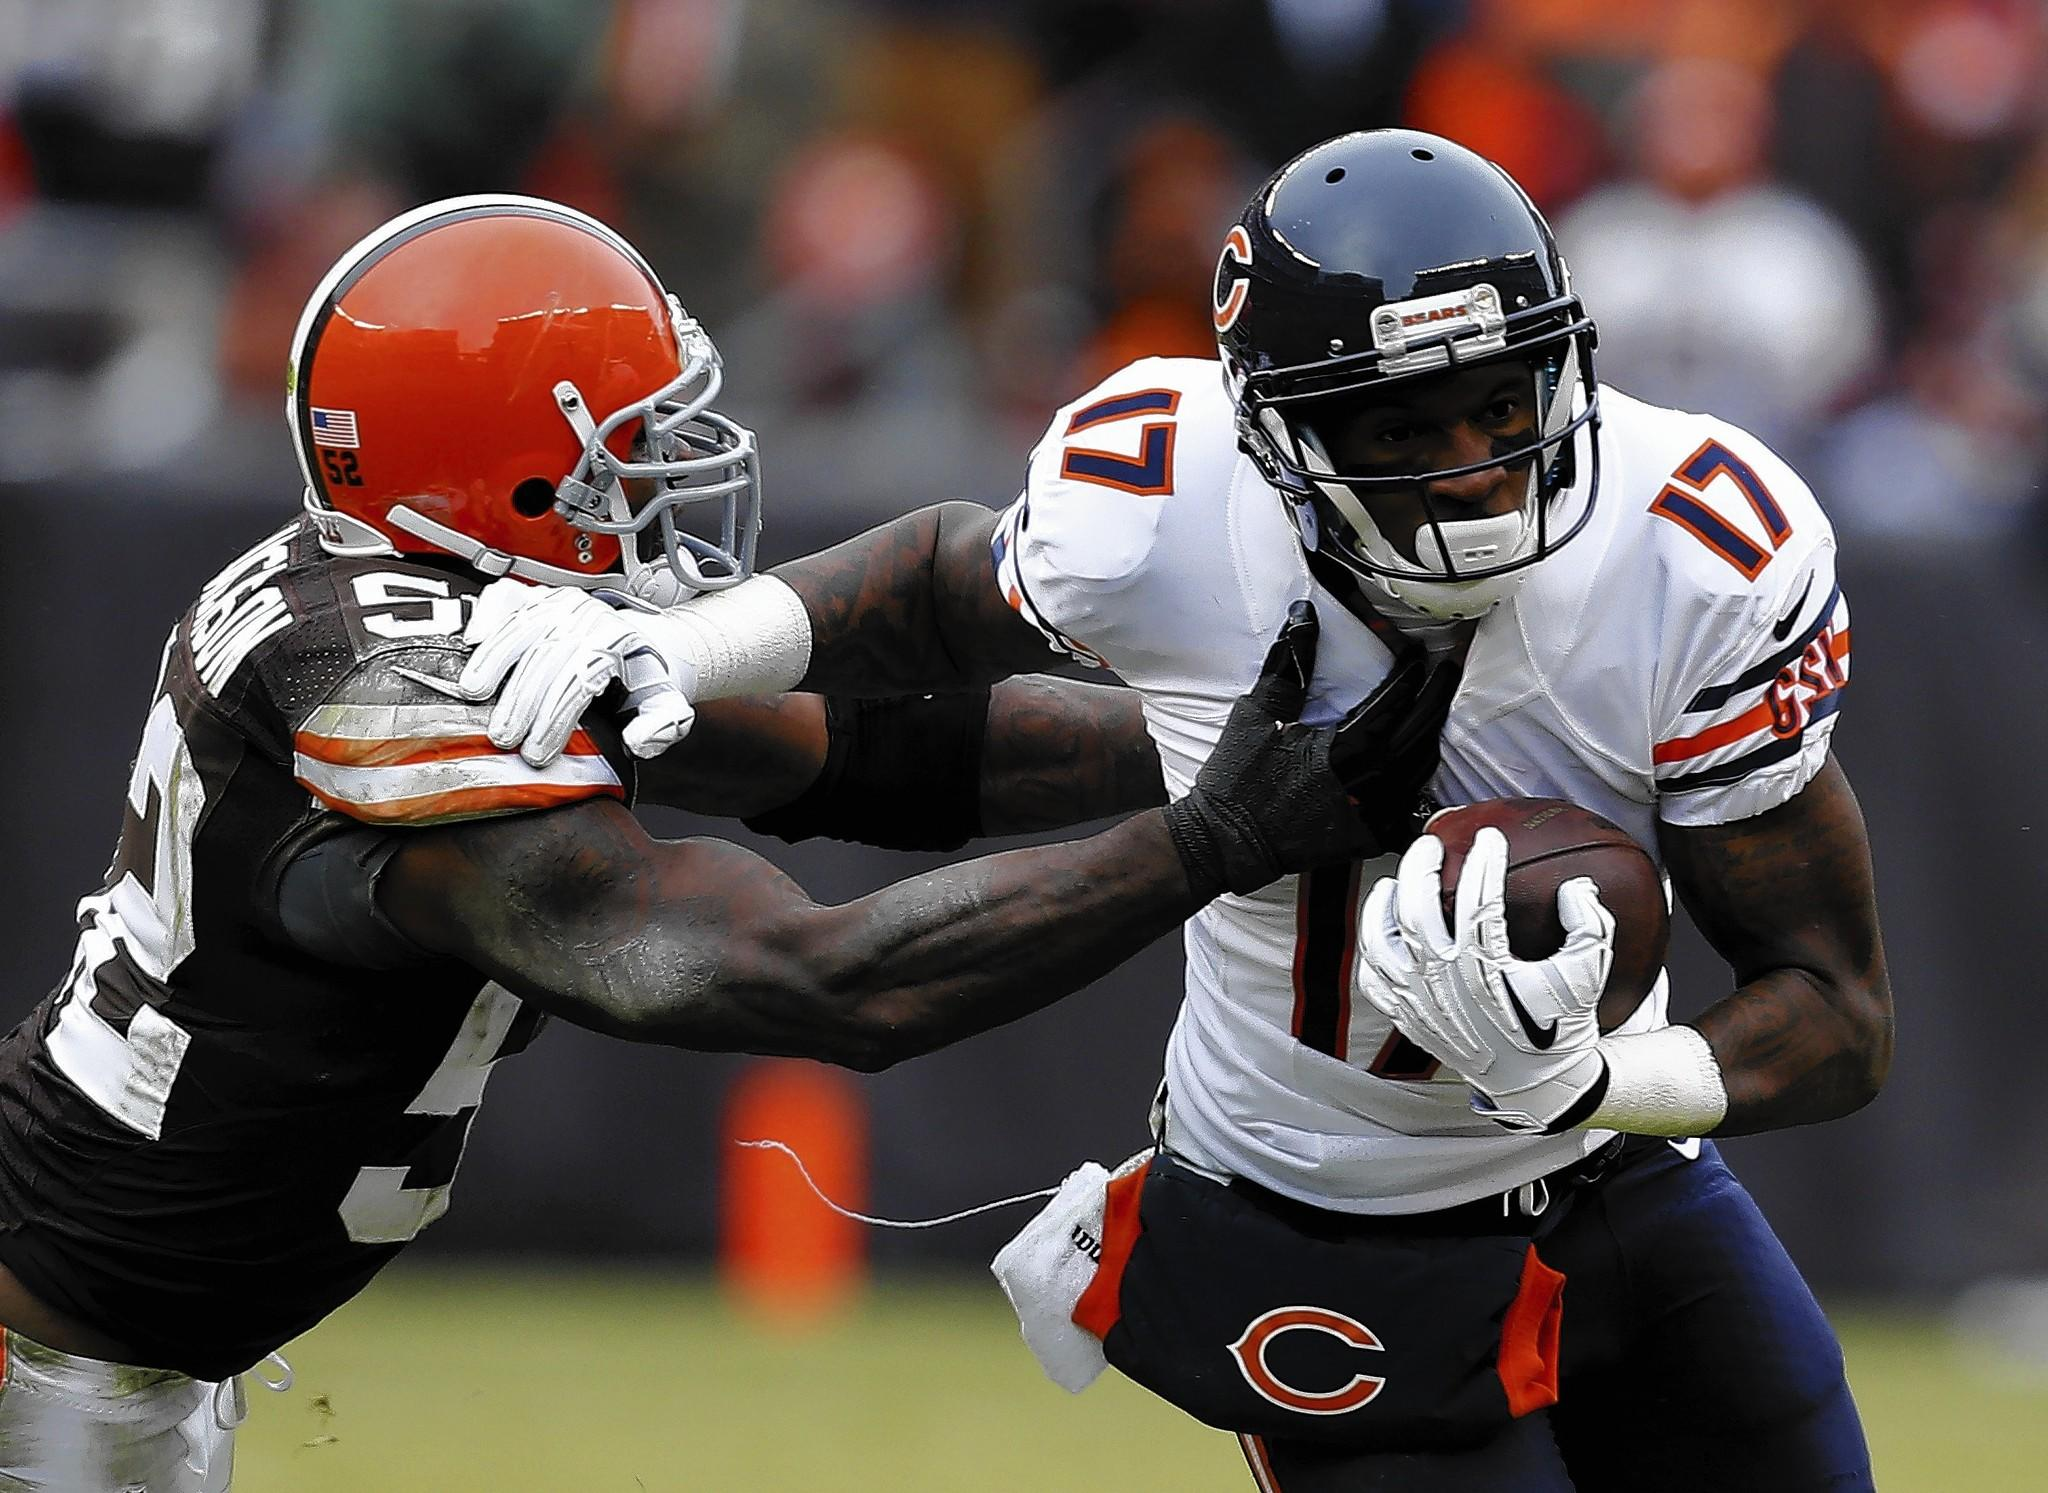 Wide receiver Alshon Jeffery #17 of the Chicago Bears runs by linebacker D'Qwell Jackson #52 of the Cleveland Browns at FirstEnergy Stadium on December 15, 2013 in Cleveland, Ohio.